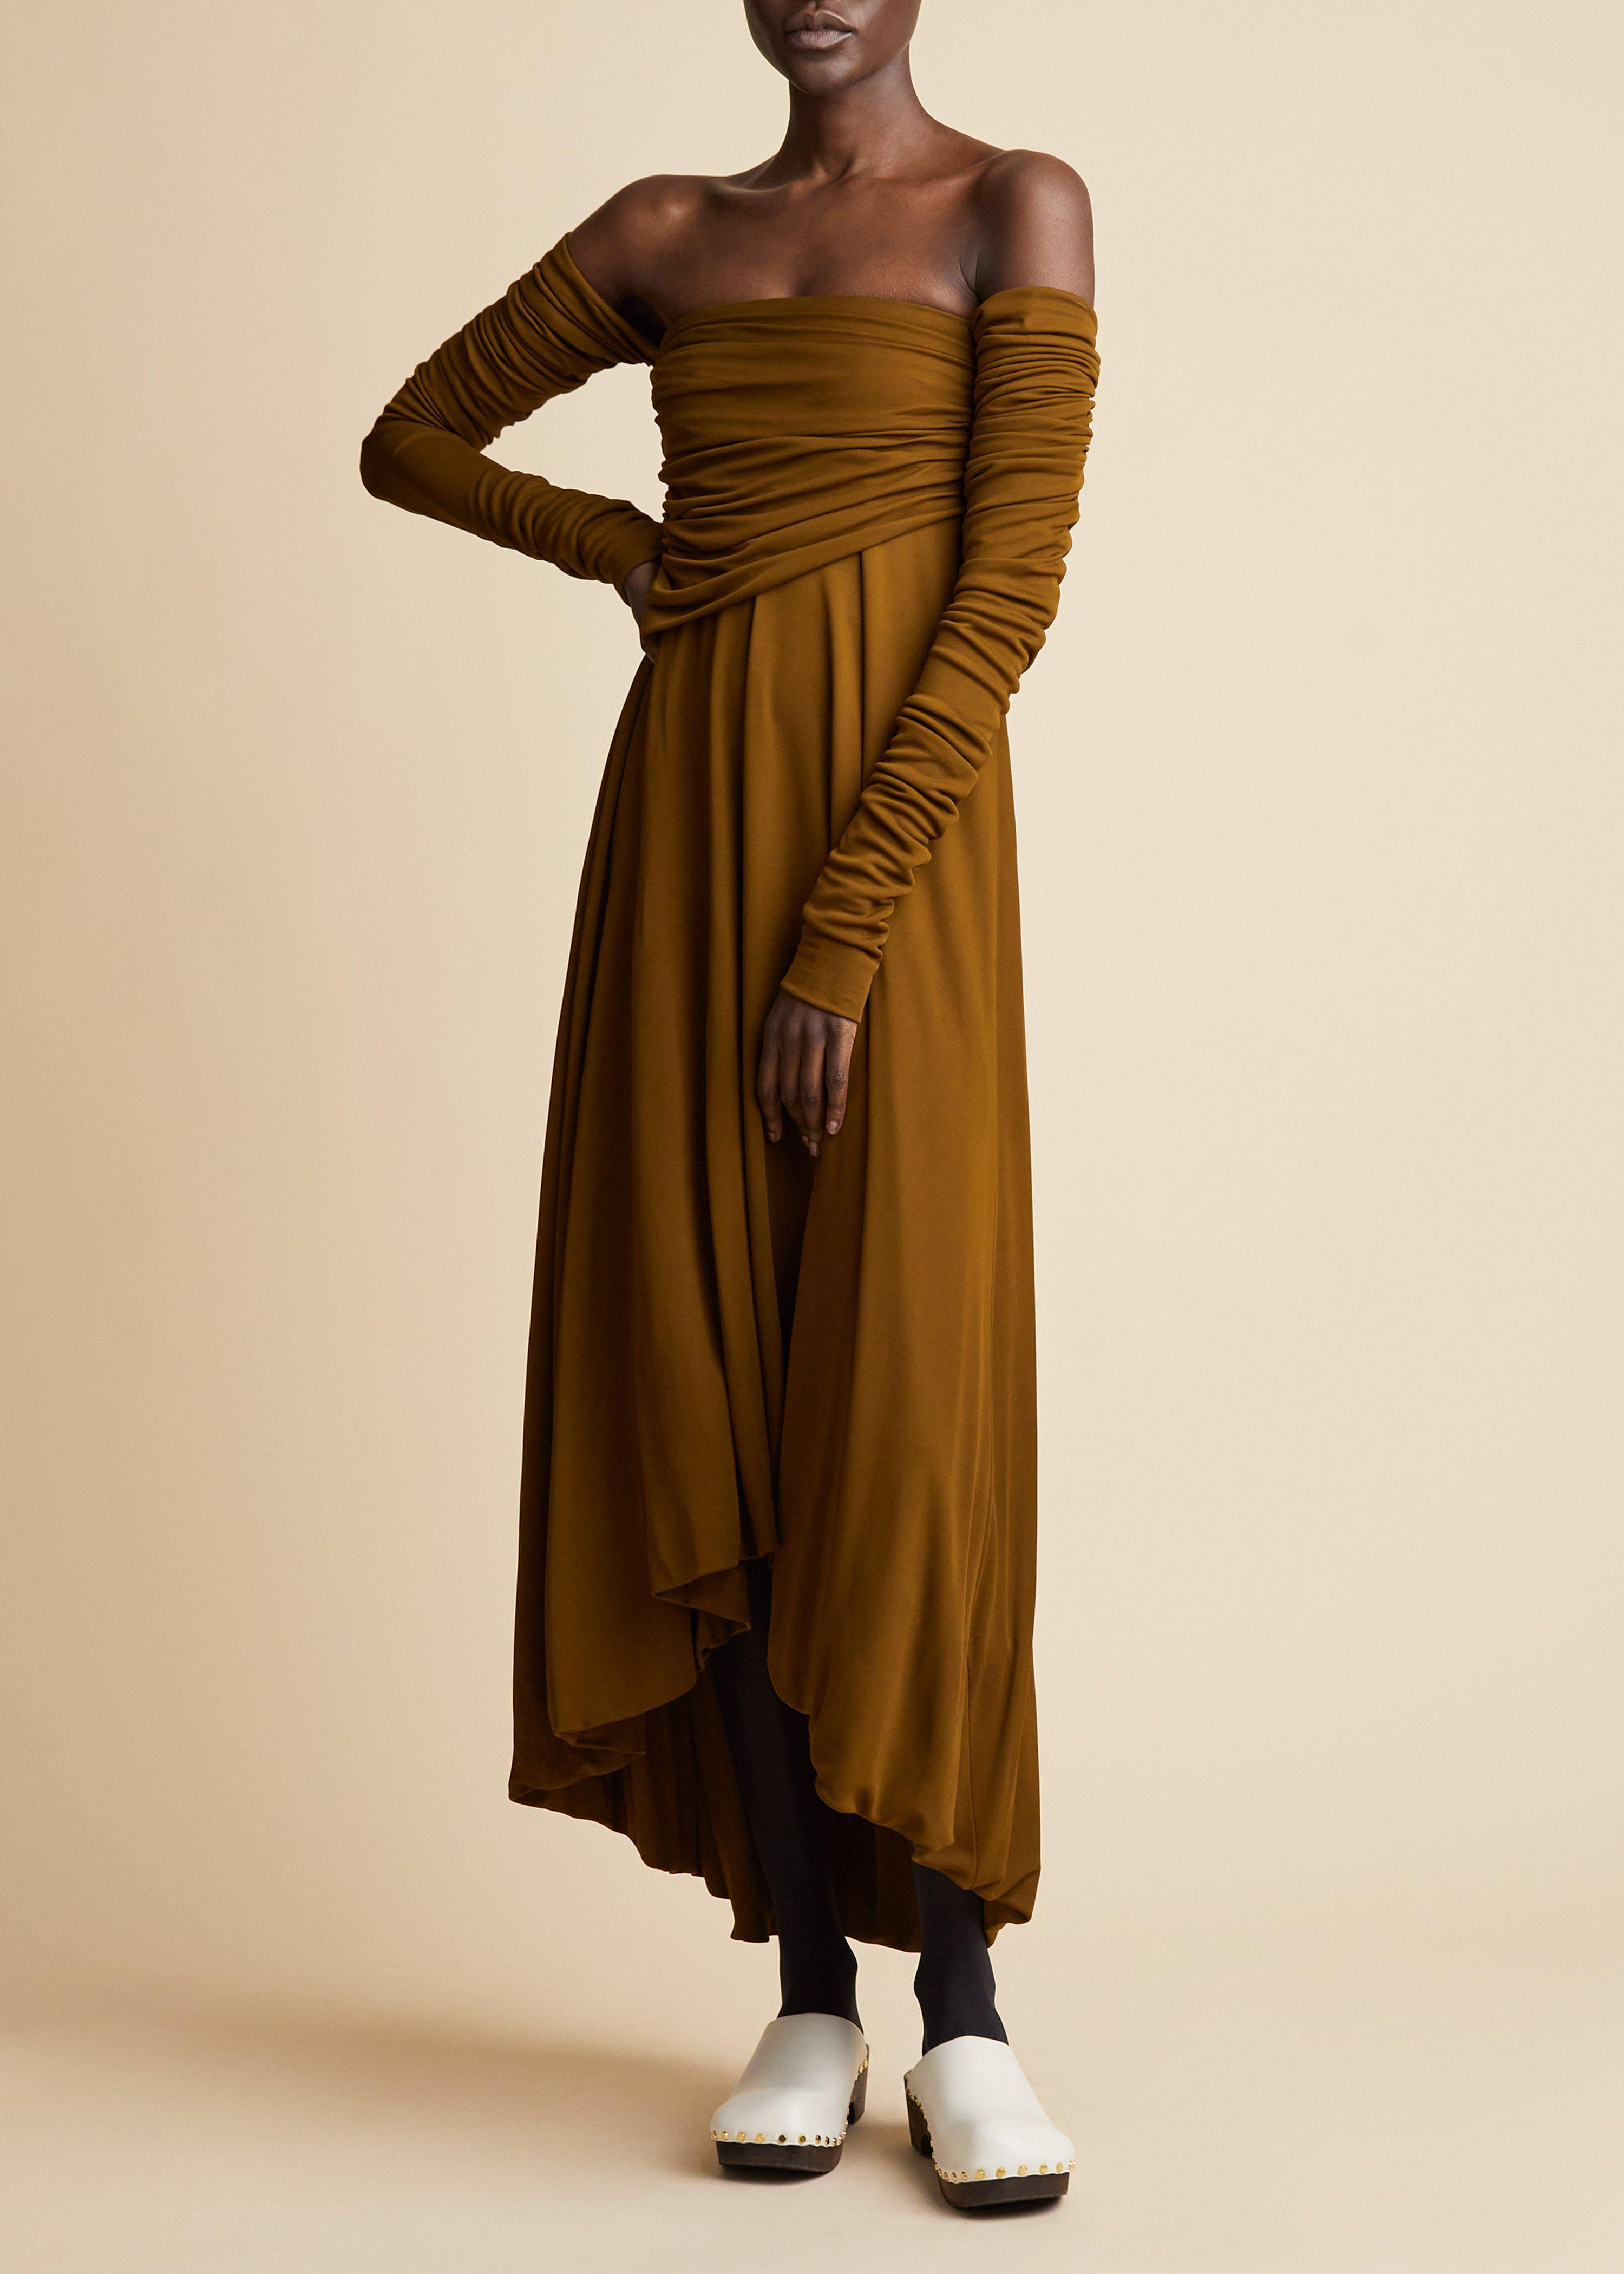 The Nerissa Dress in Olive